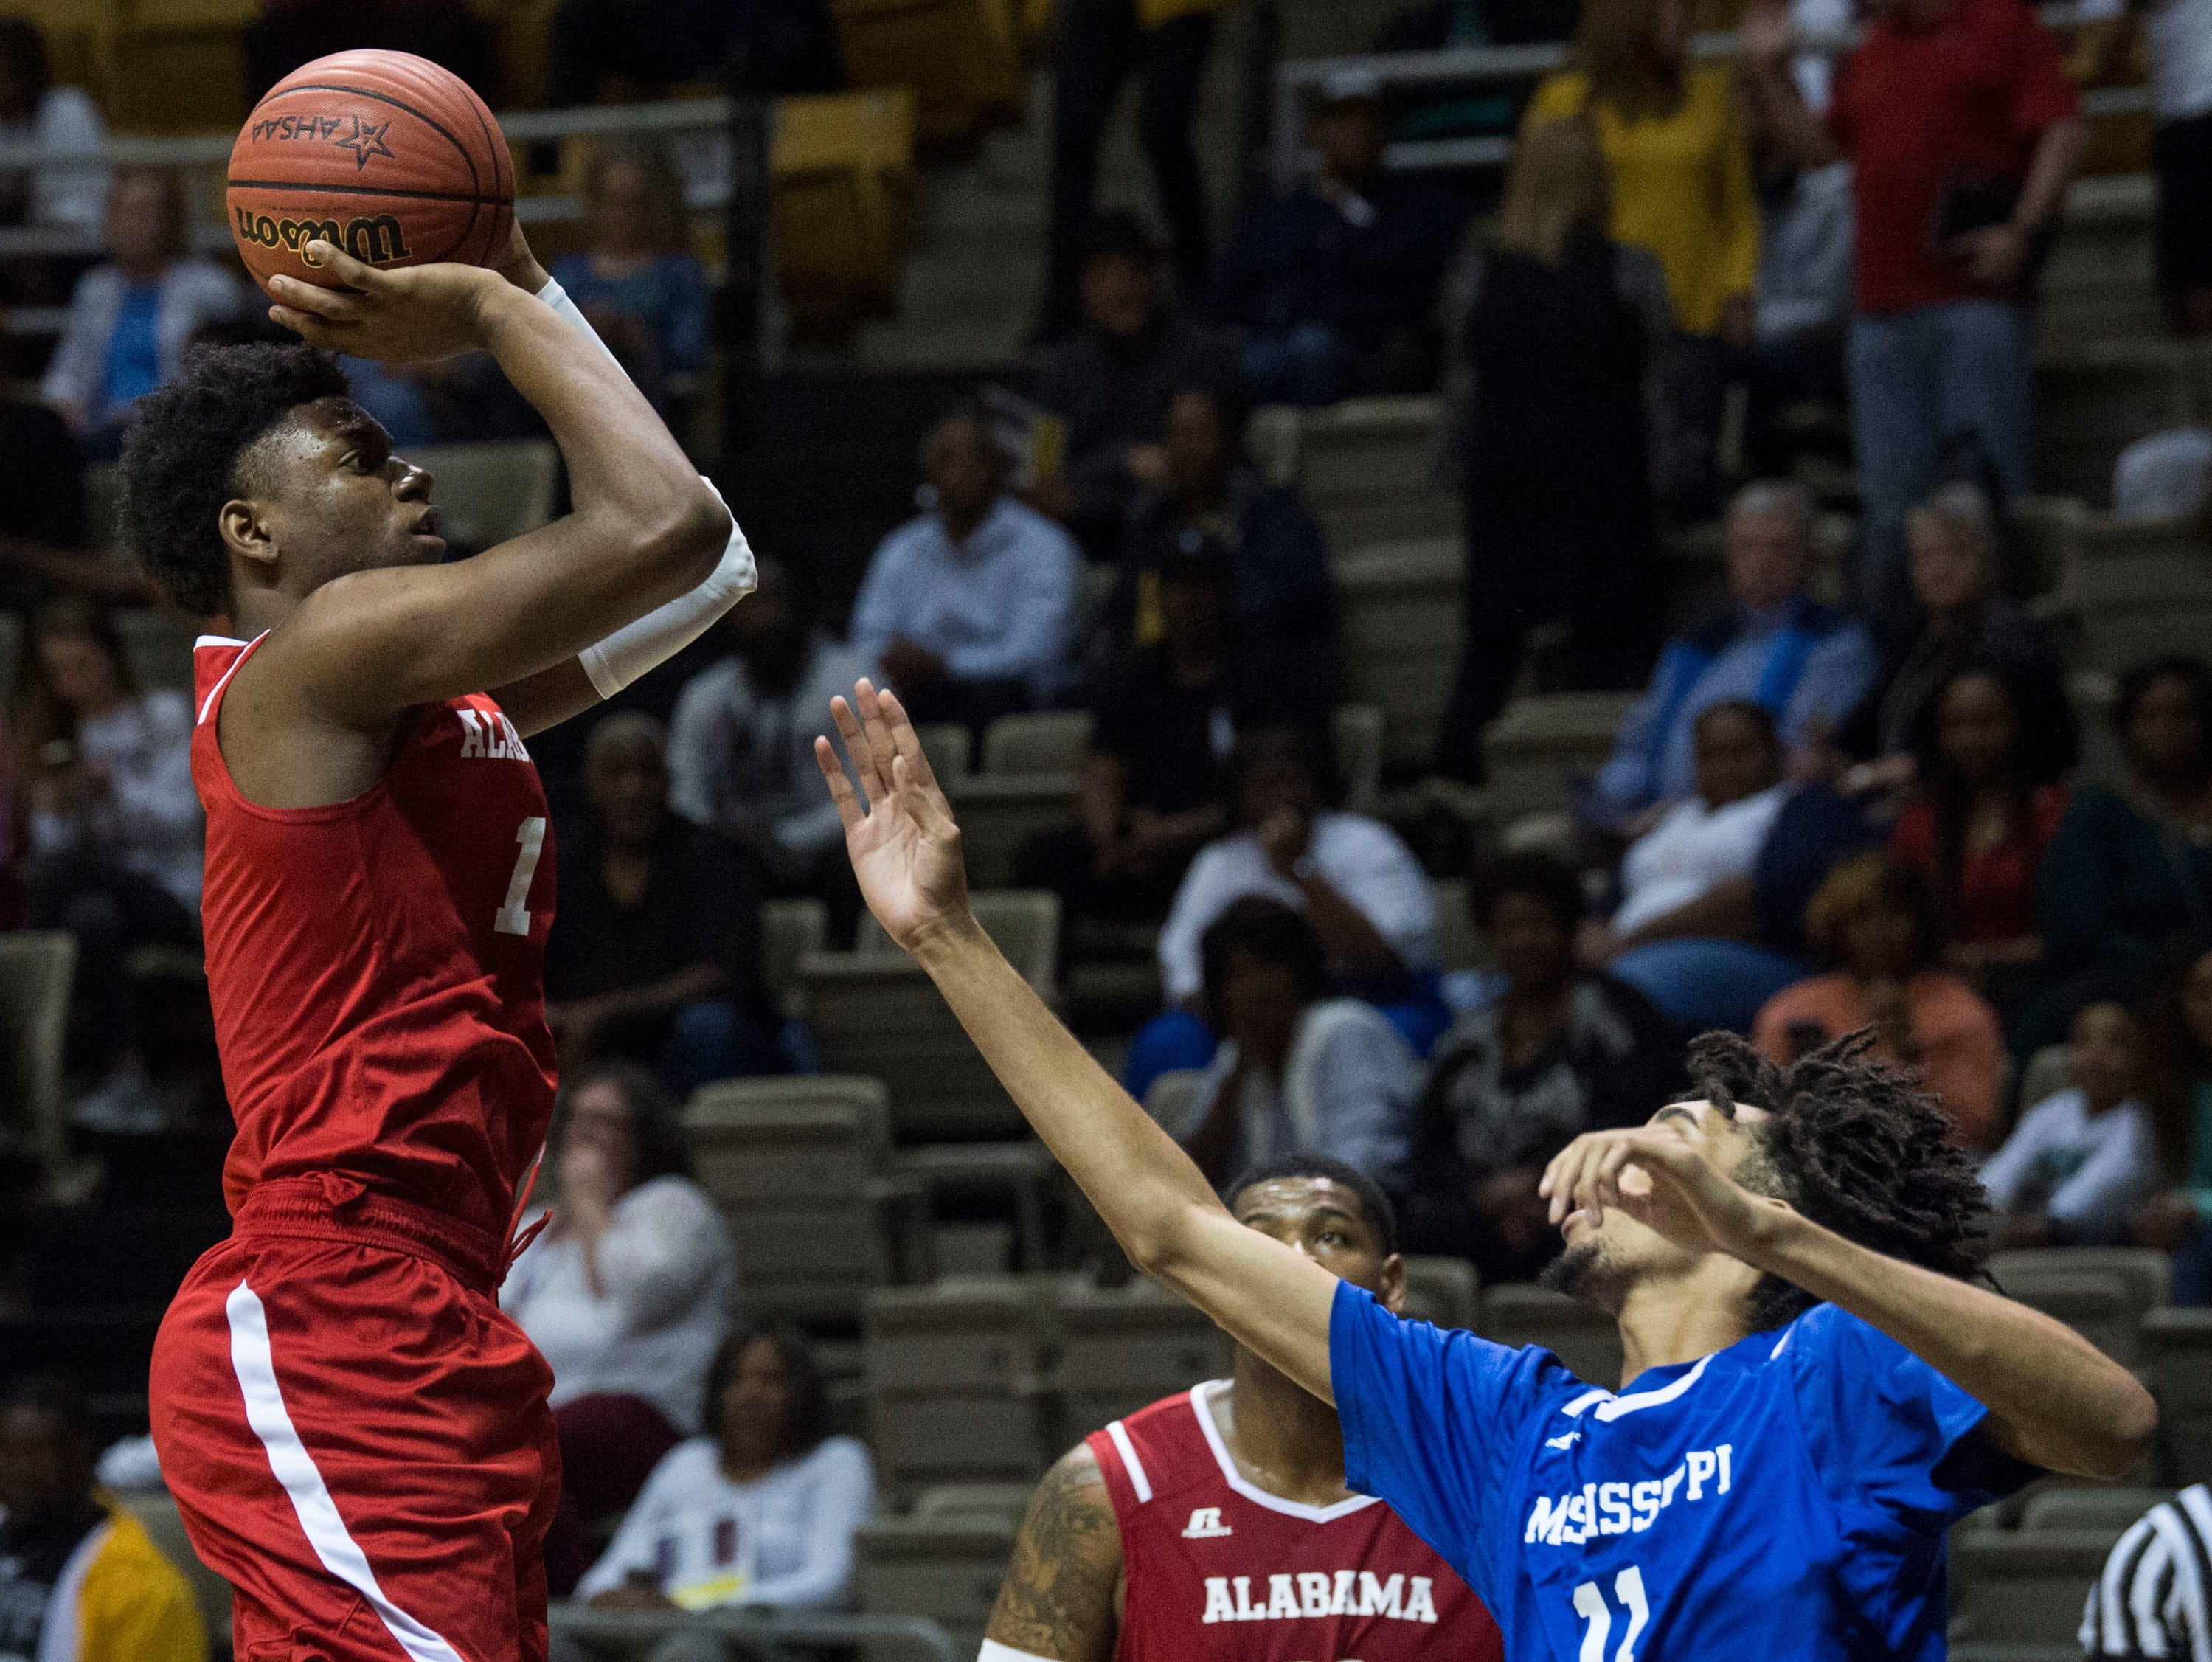 Alabama's Jaykwon Walton (1) takes a jump shot during the Alabama-Mississippi All-Star game at the Dunn-Oliver Acadome in Montgomery, Ala., on Friday, March 15, 2019. Mississippi All-stars leads the Alabama All-stars 47-39 at halftime.